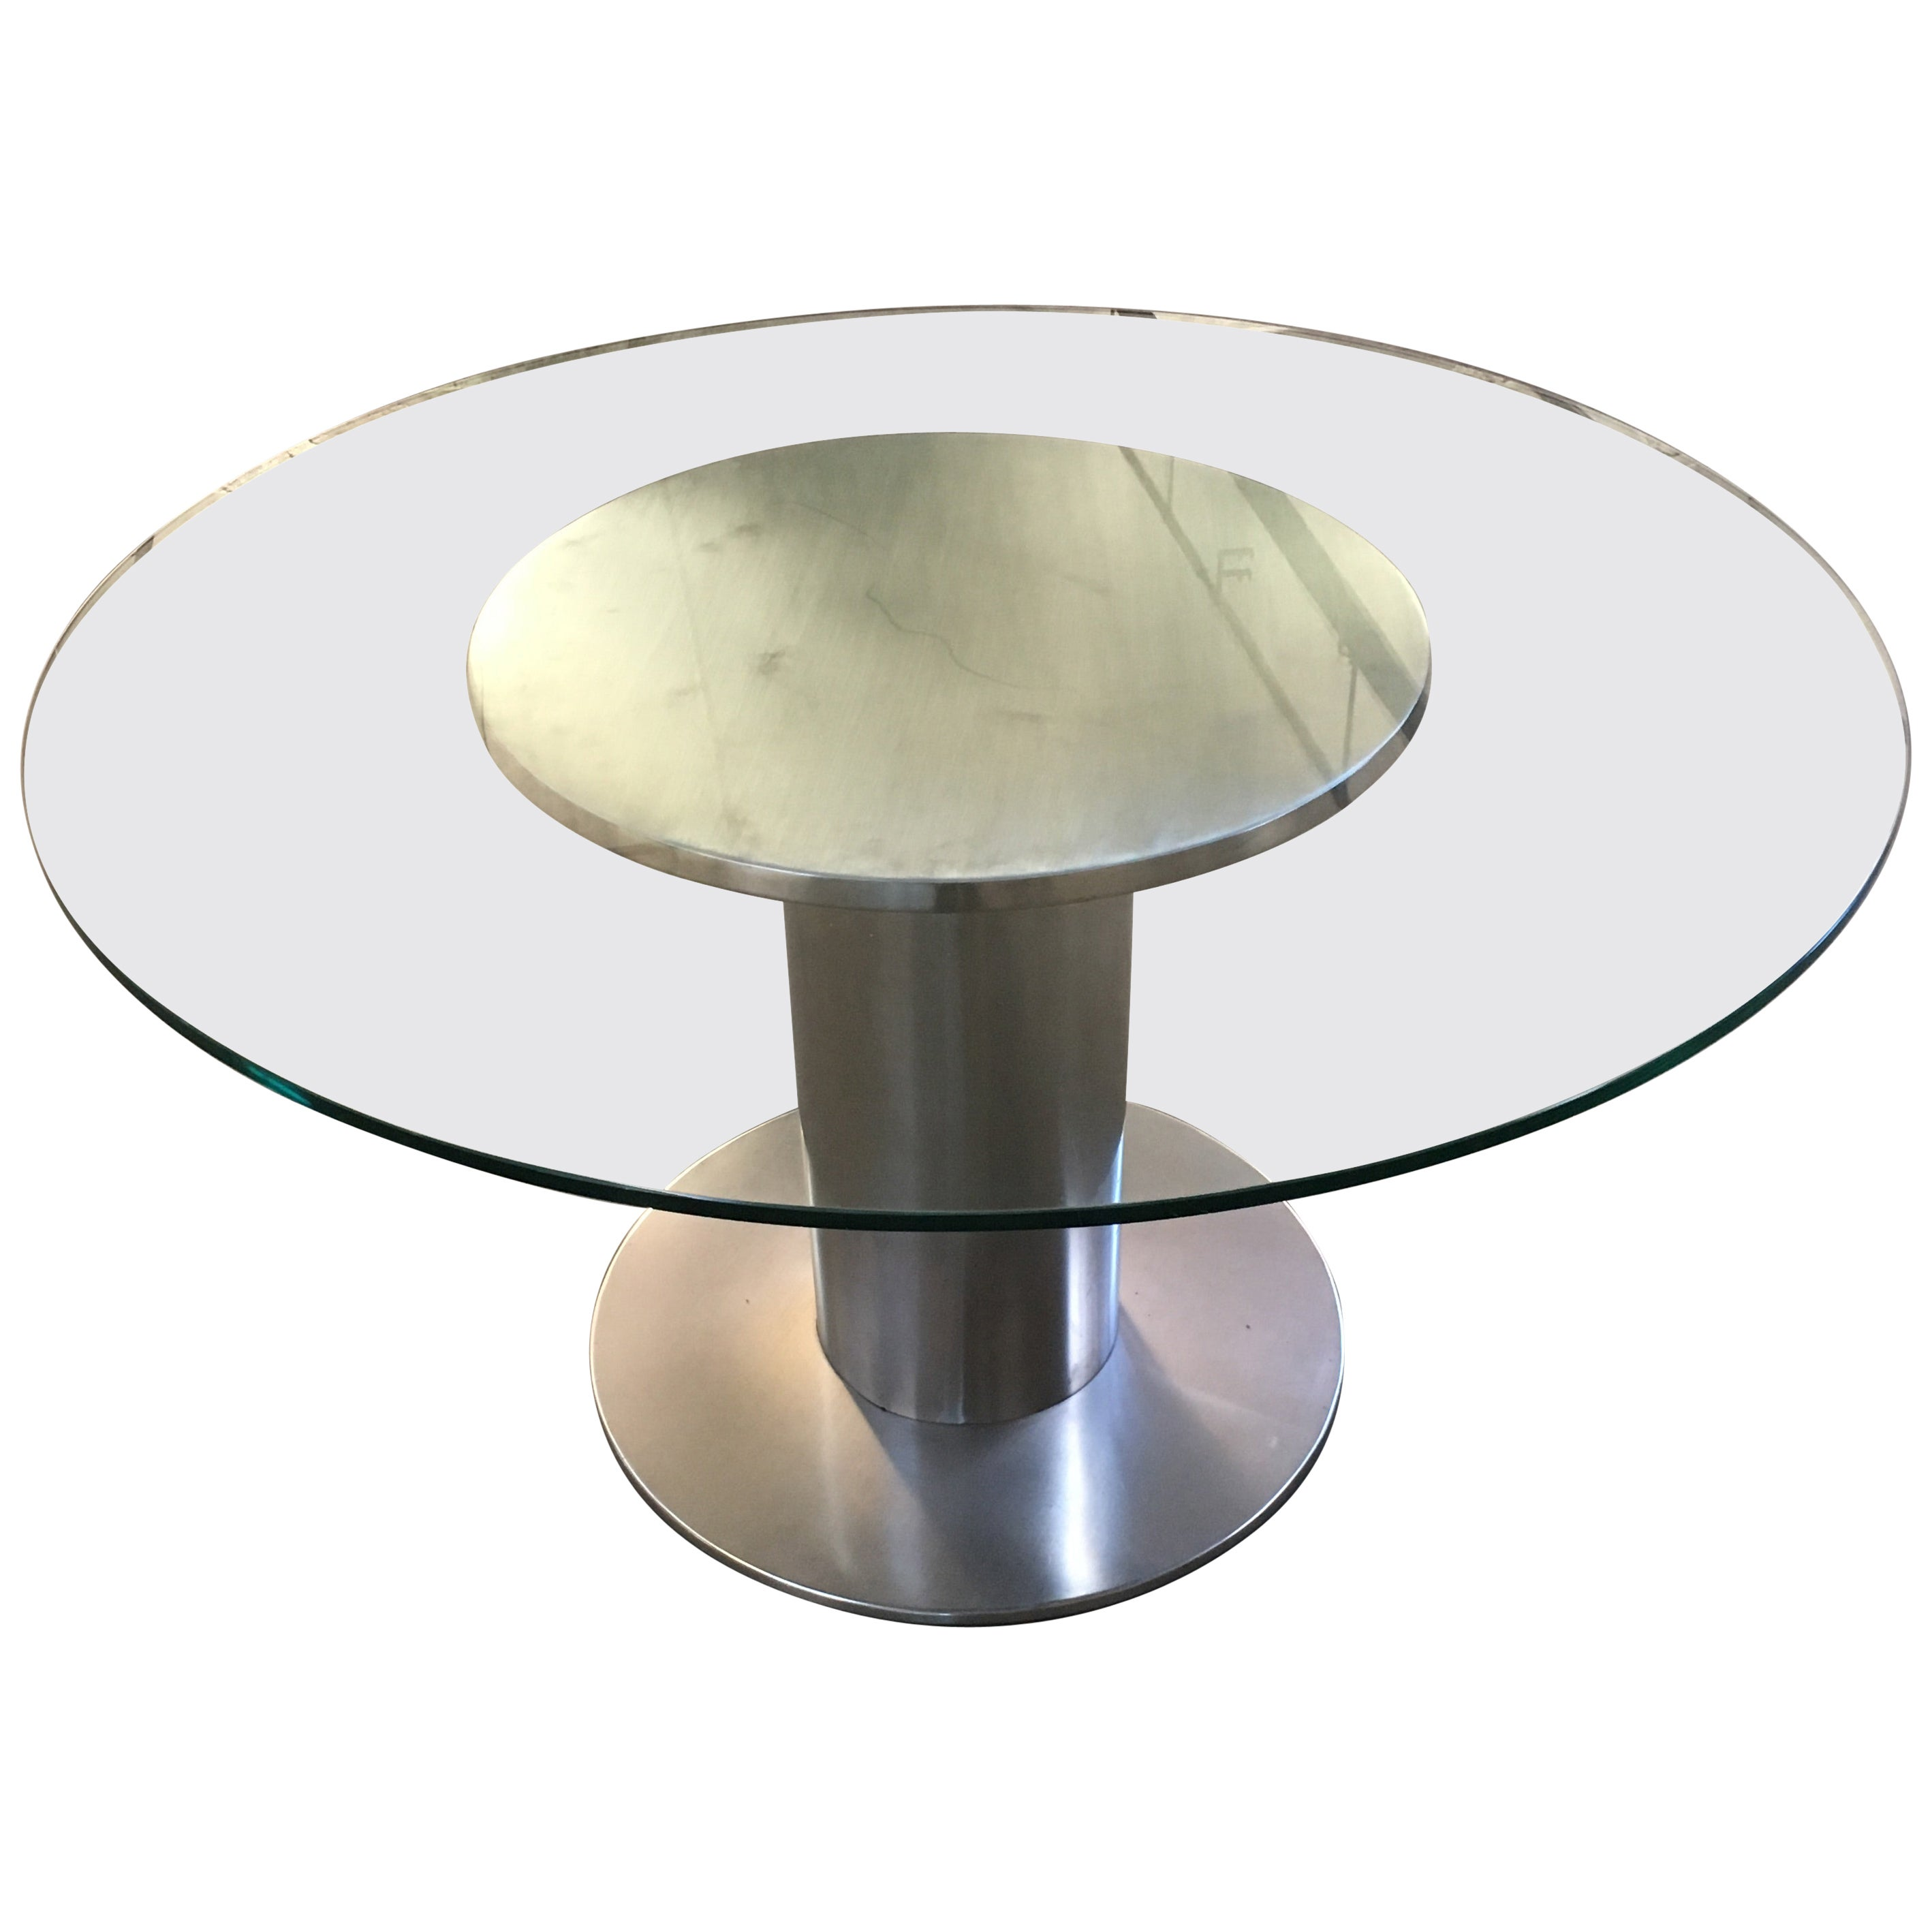 Mid-Century Modern Italian Chrome Table with Round Glass Top from 1970s